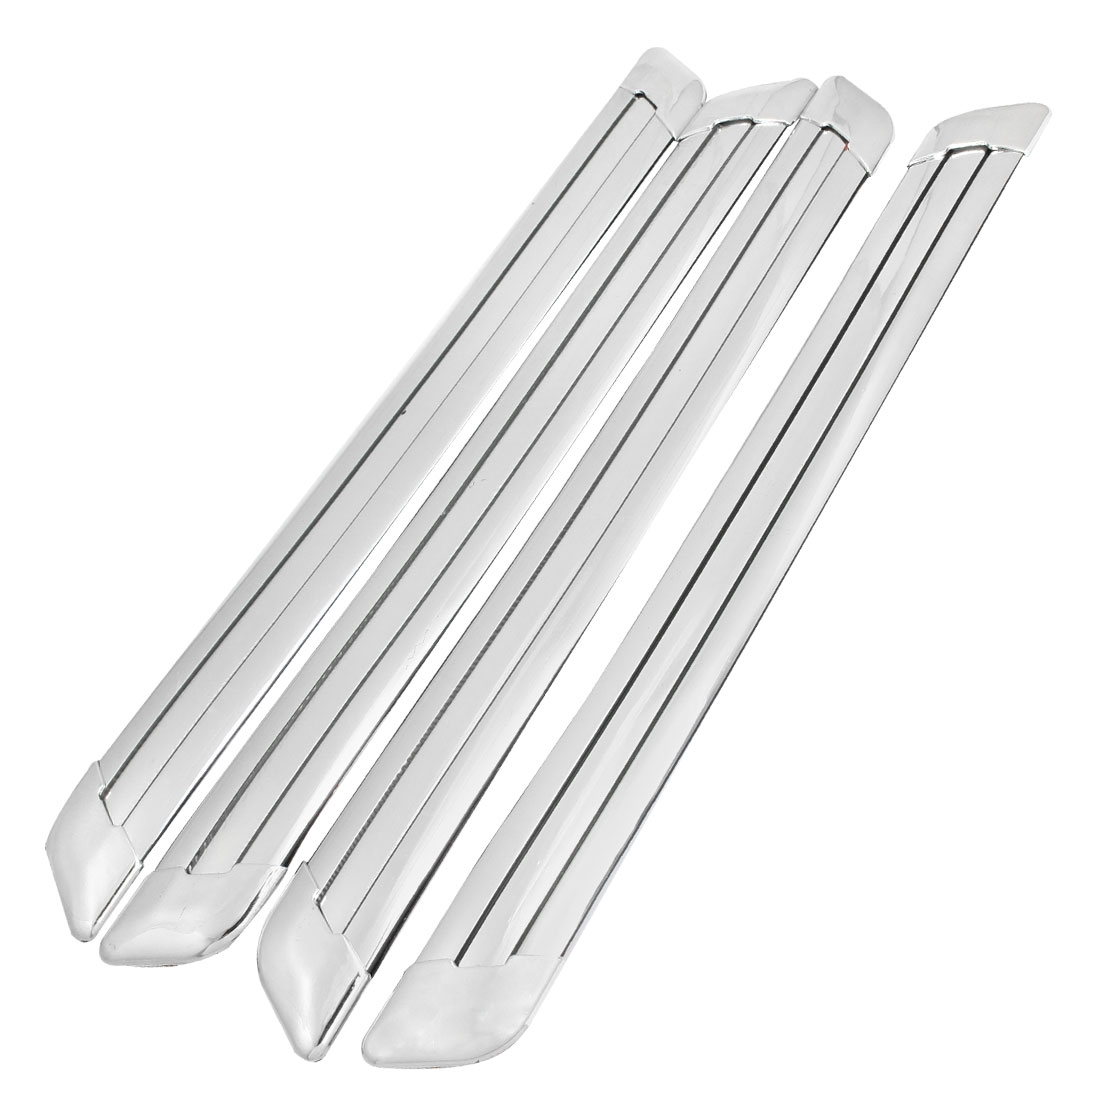 4 Pcs Silver Tone Soft Plastic Adhesive Car Door Bumper Guard Sticker